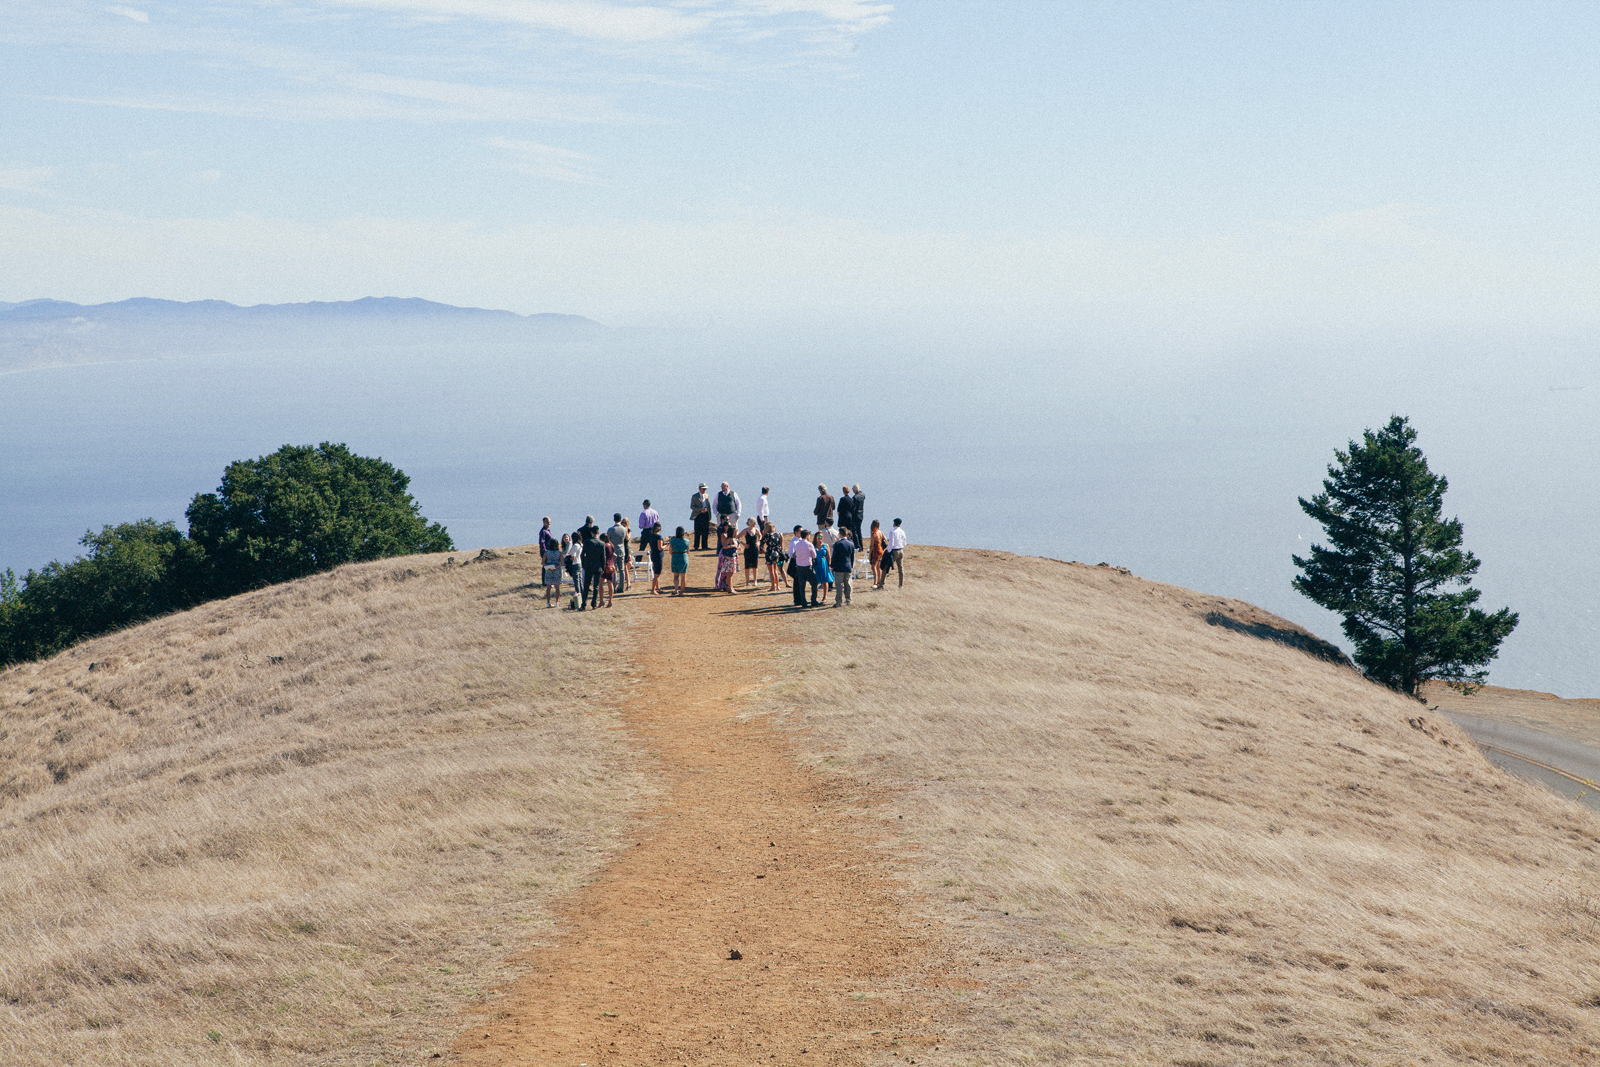 mt_tam_wedding_photography_marin_zac_katie_ebony_siovhan_bokeh_photography_05.jpg